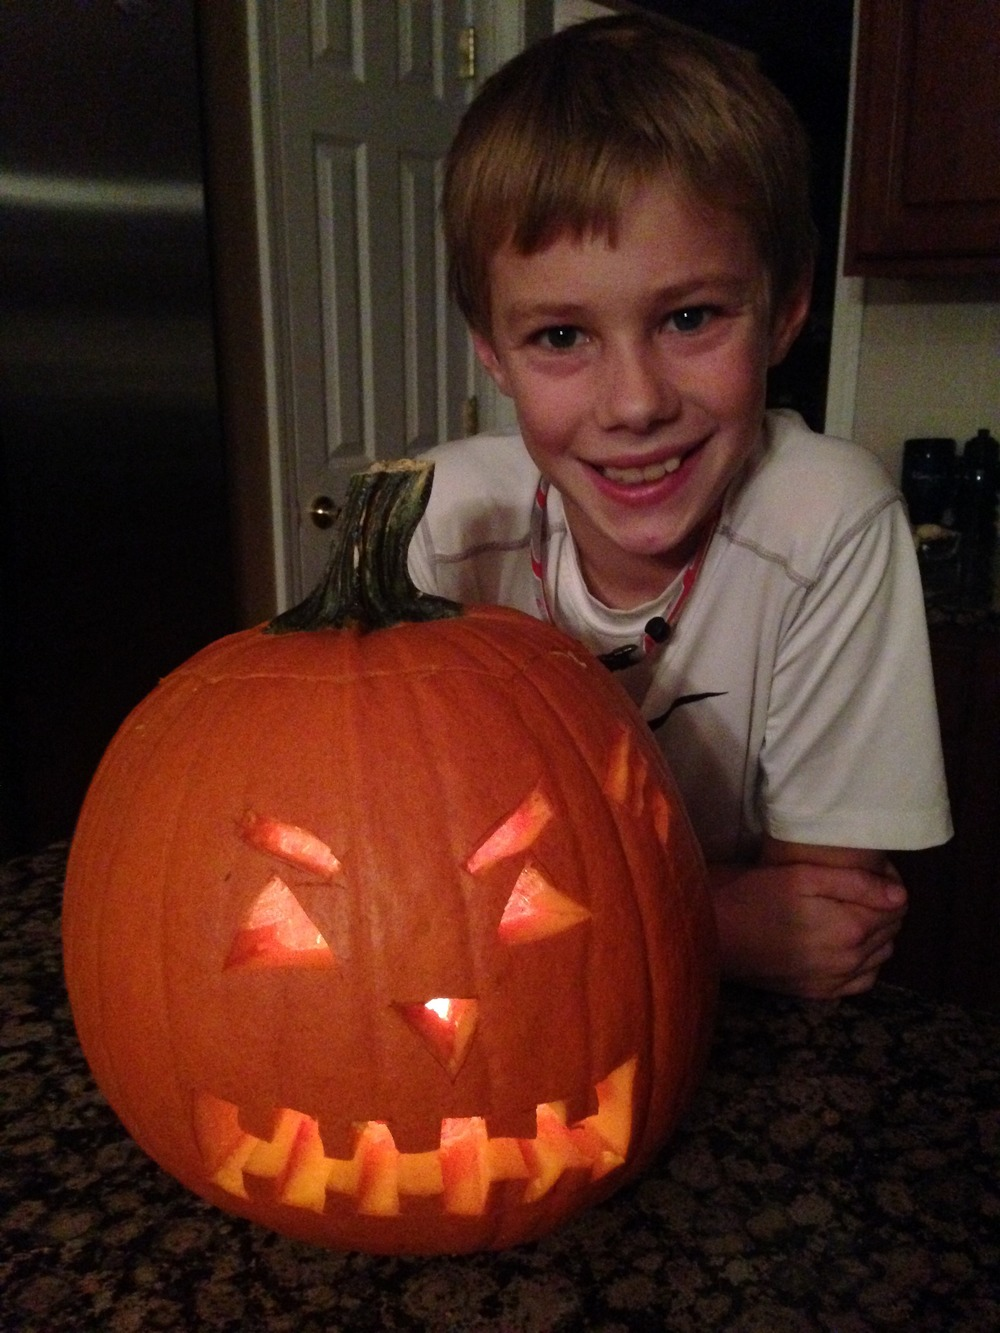 Proud boy carved it all by himself with a little help from mom.